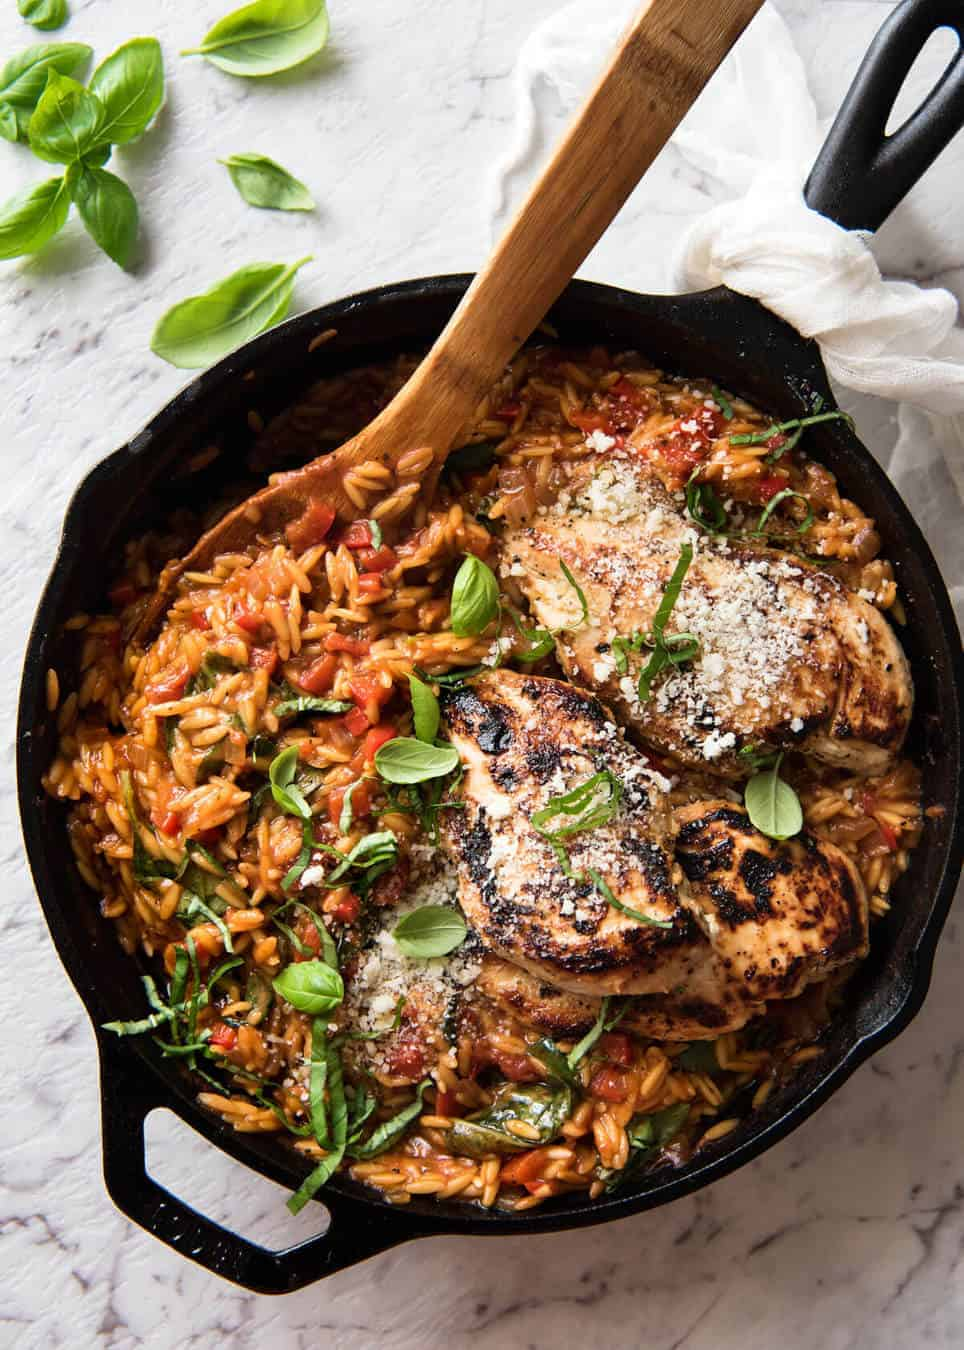 One pot italian chicken orzo risoni pasta recipetin eats risoni pasta recipe with chicken italian chicken with a tomato basil risoni pasta recipe forumfinder Gallery